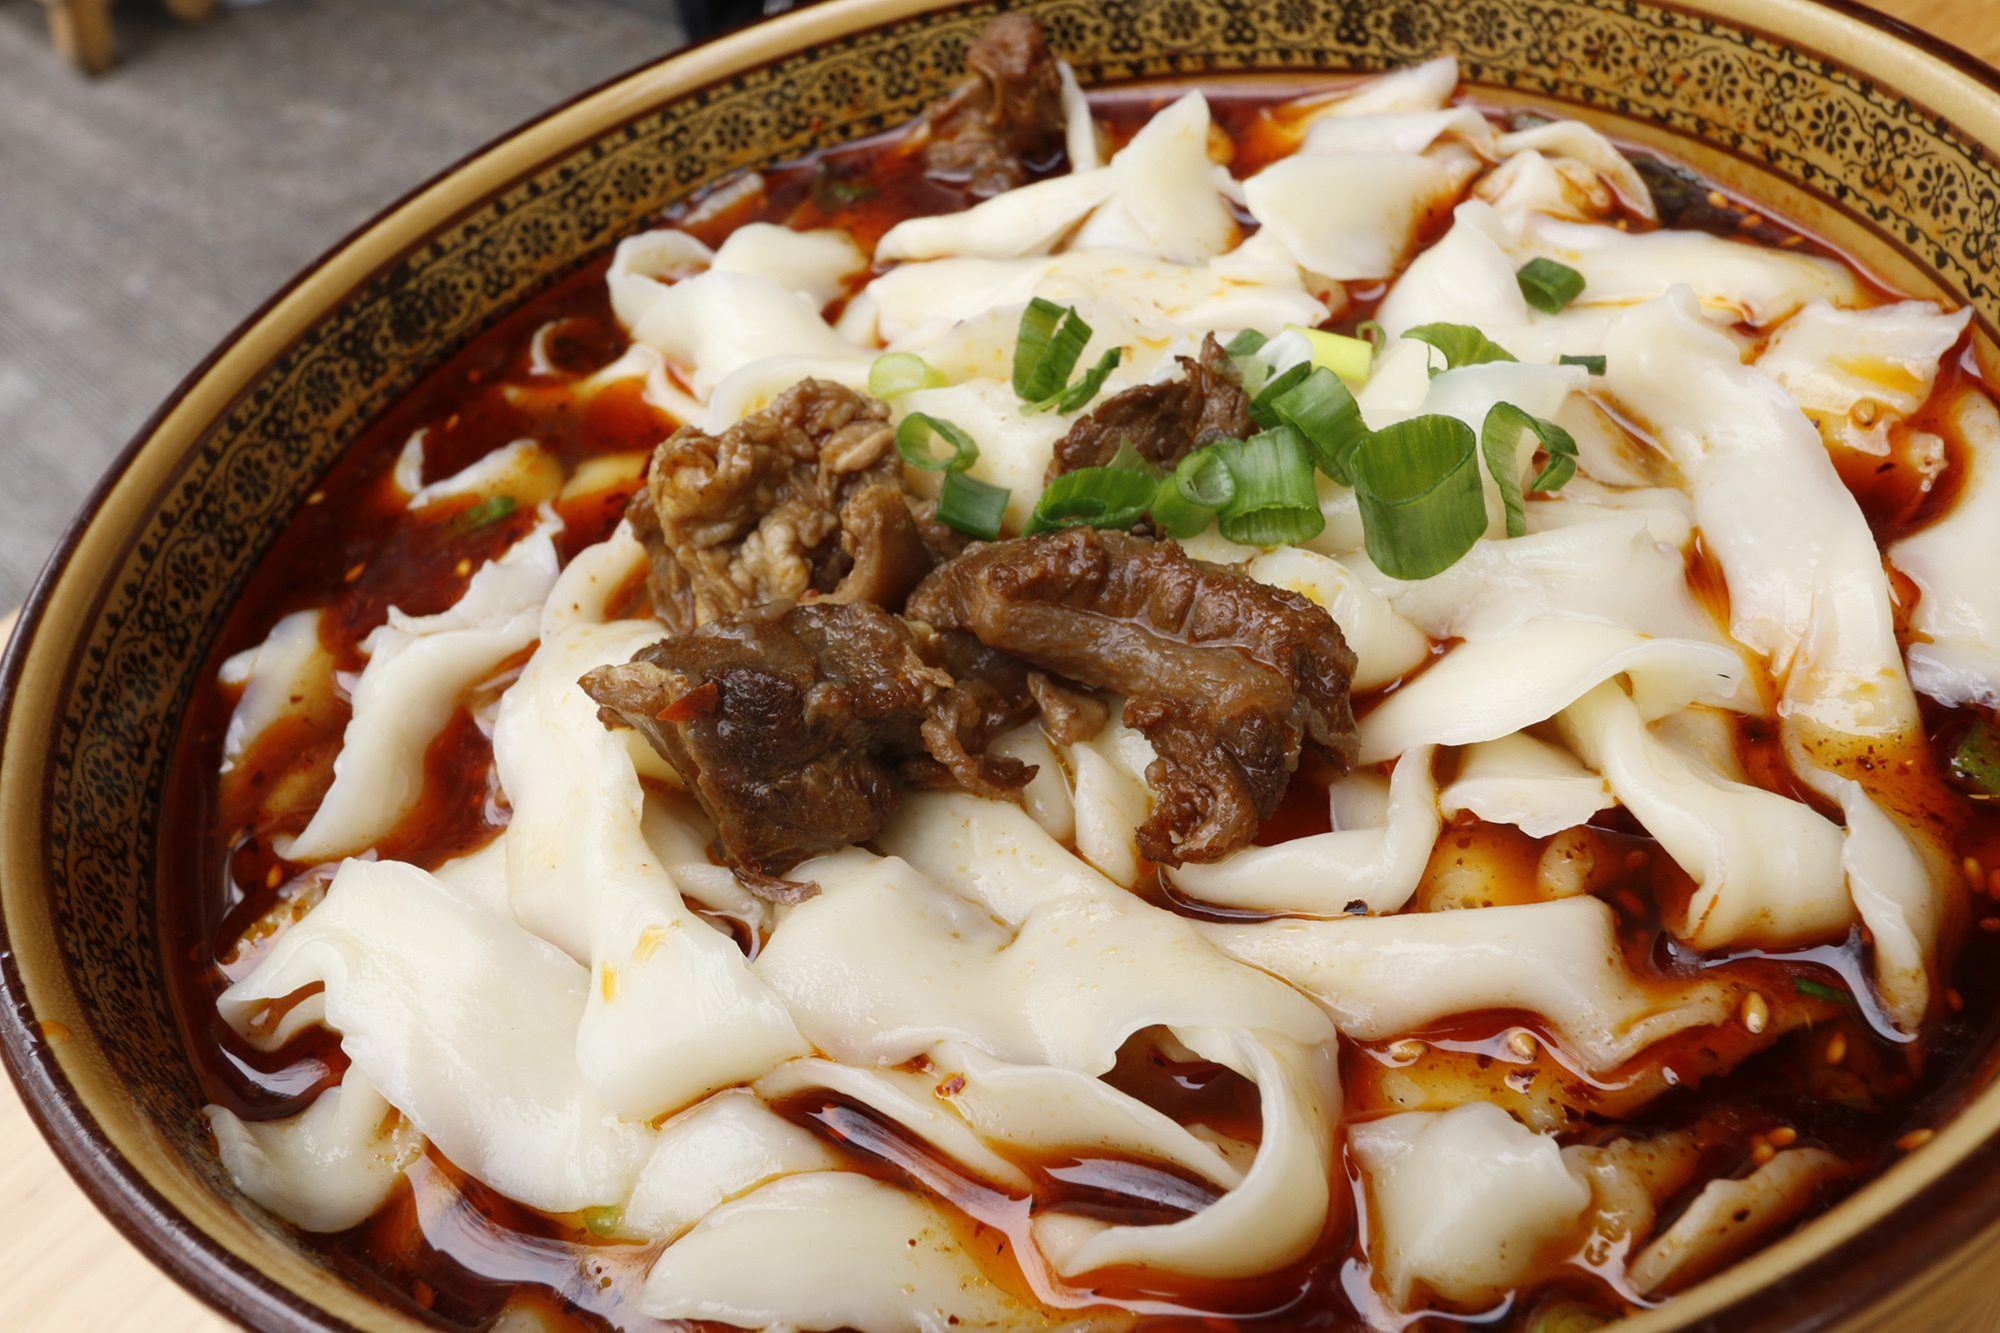 I moved to China because of noodles like these! Delicious and spicy hand pulled red braised beef noodles!